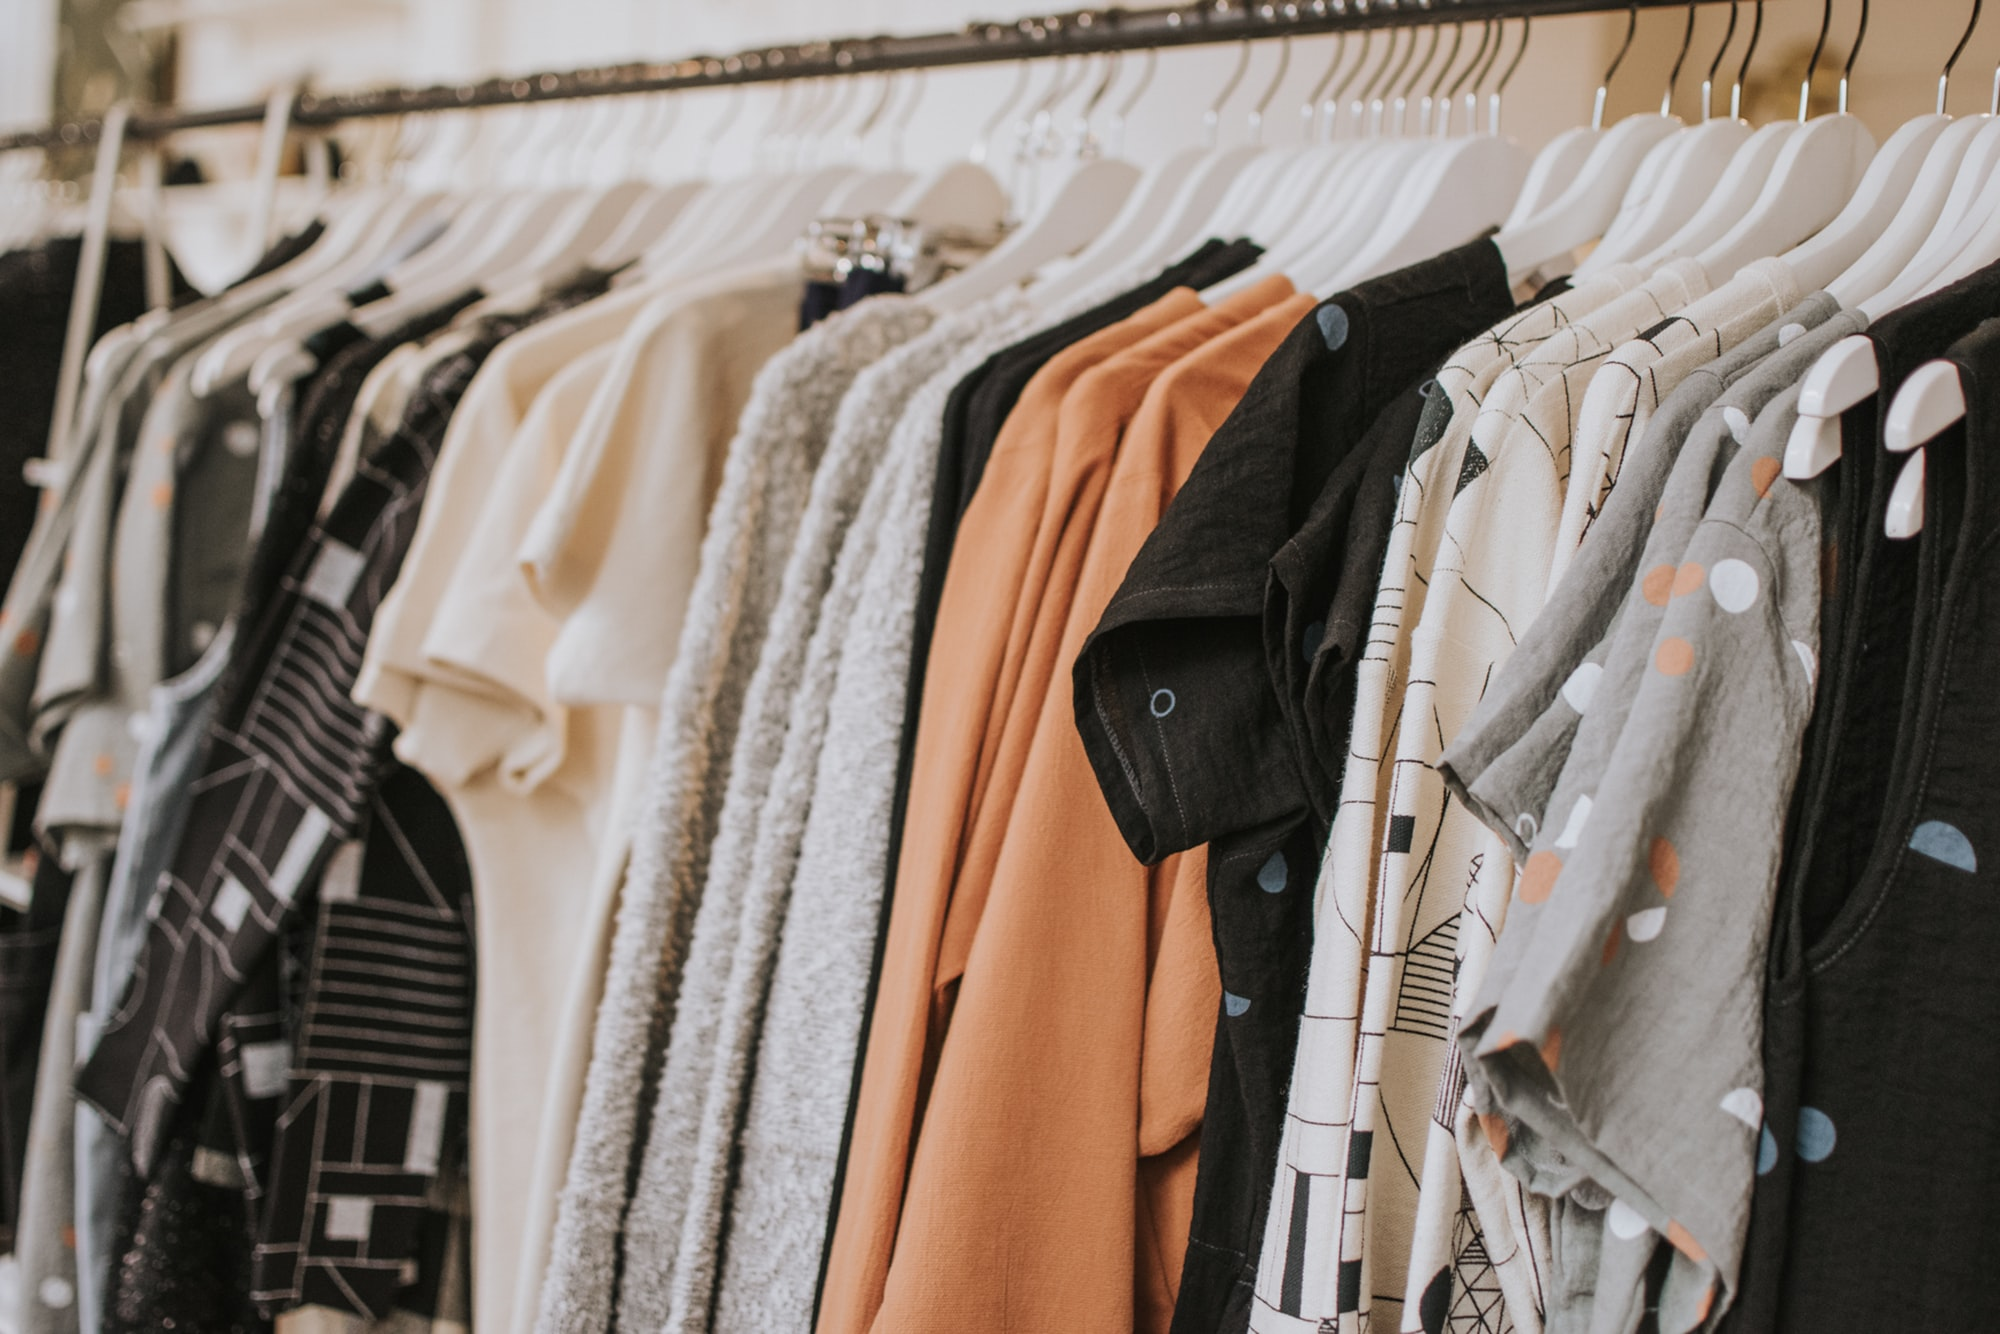 How A Fashion Brand Solved The Issue Of Seller Onboarding With Automation